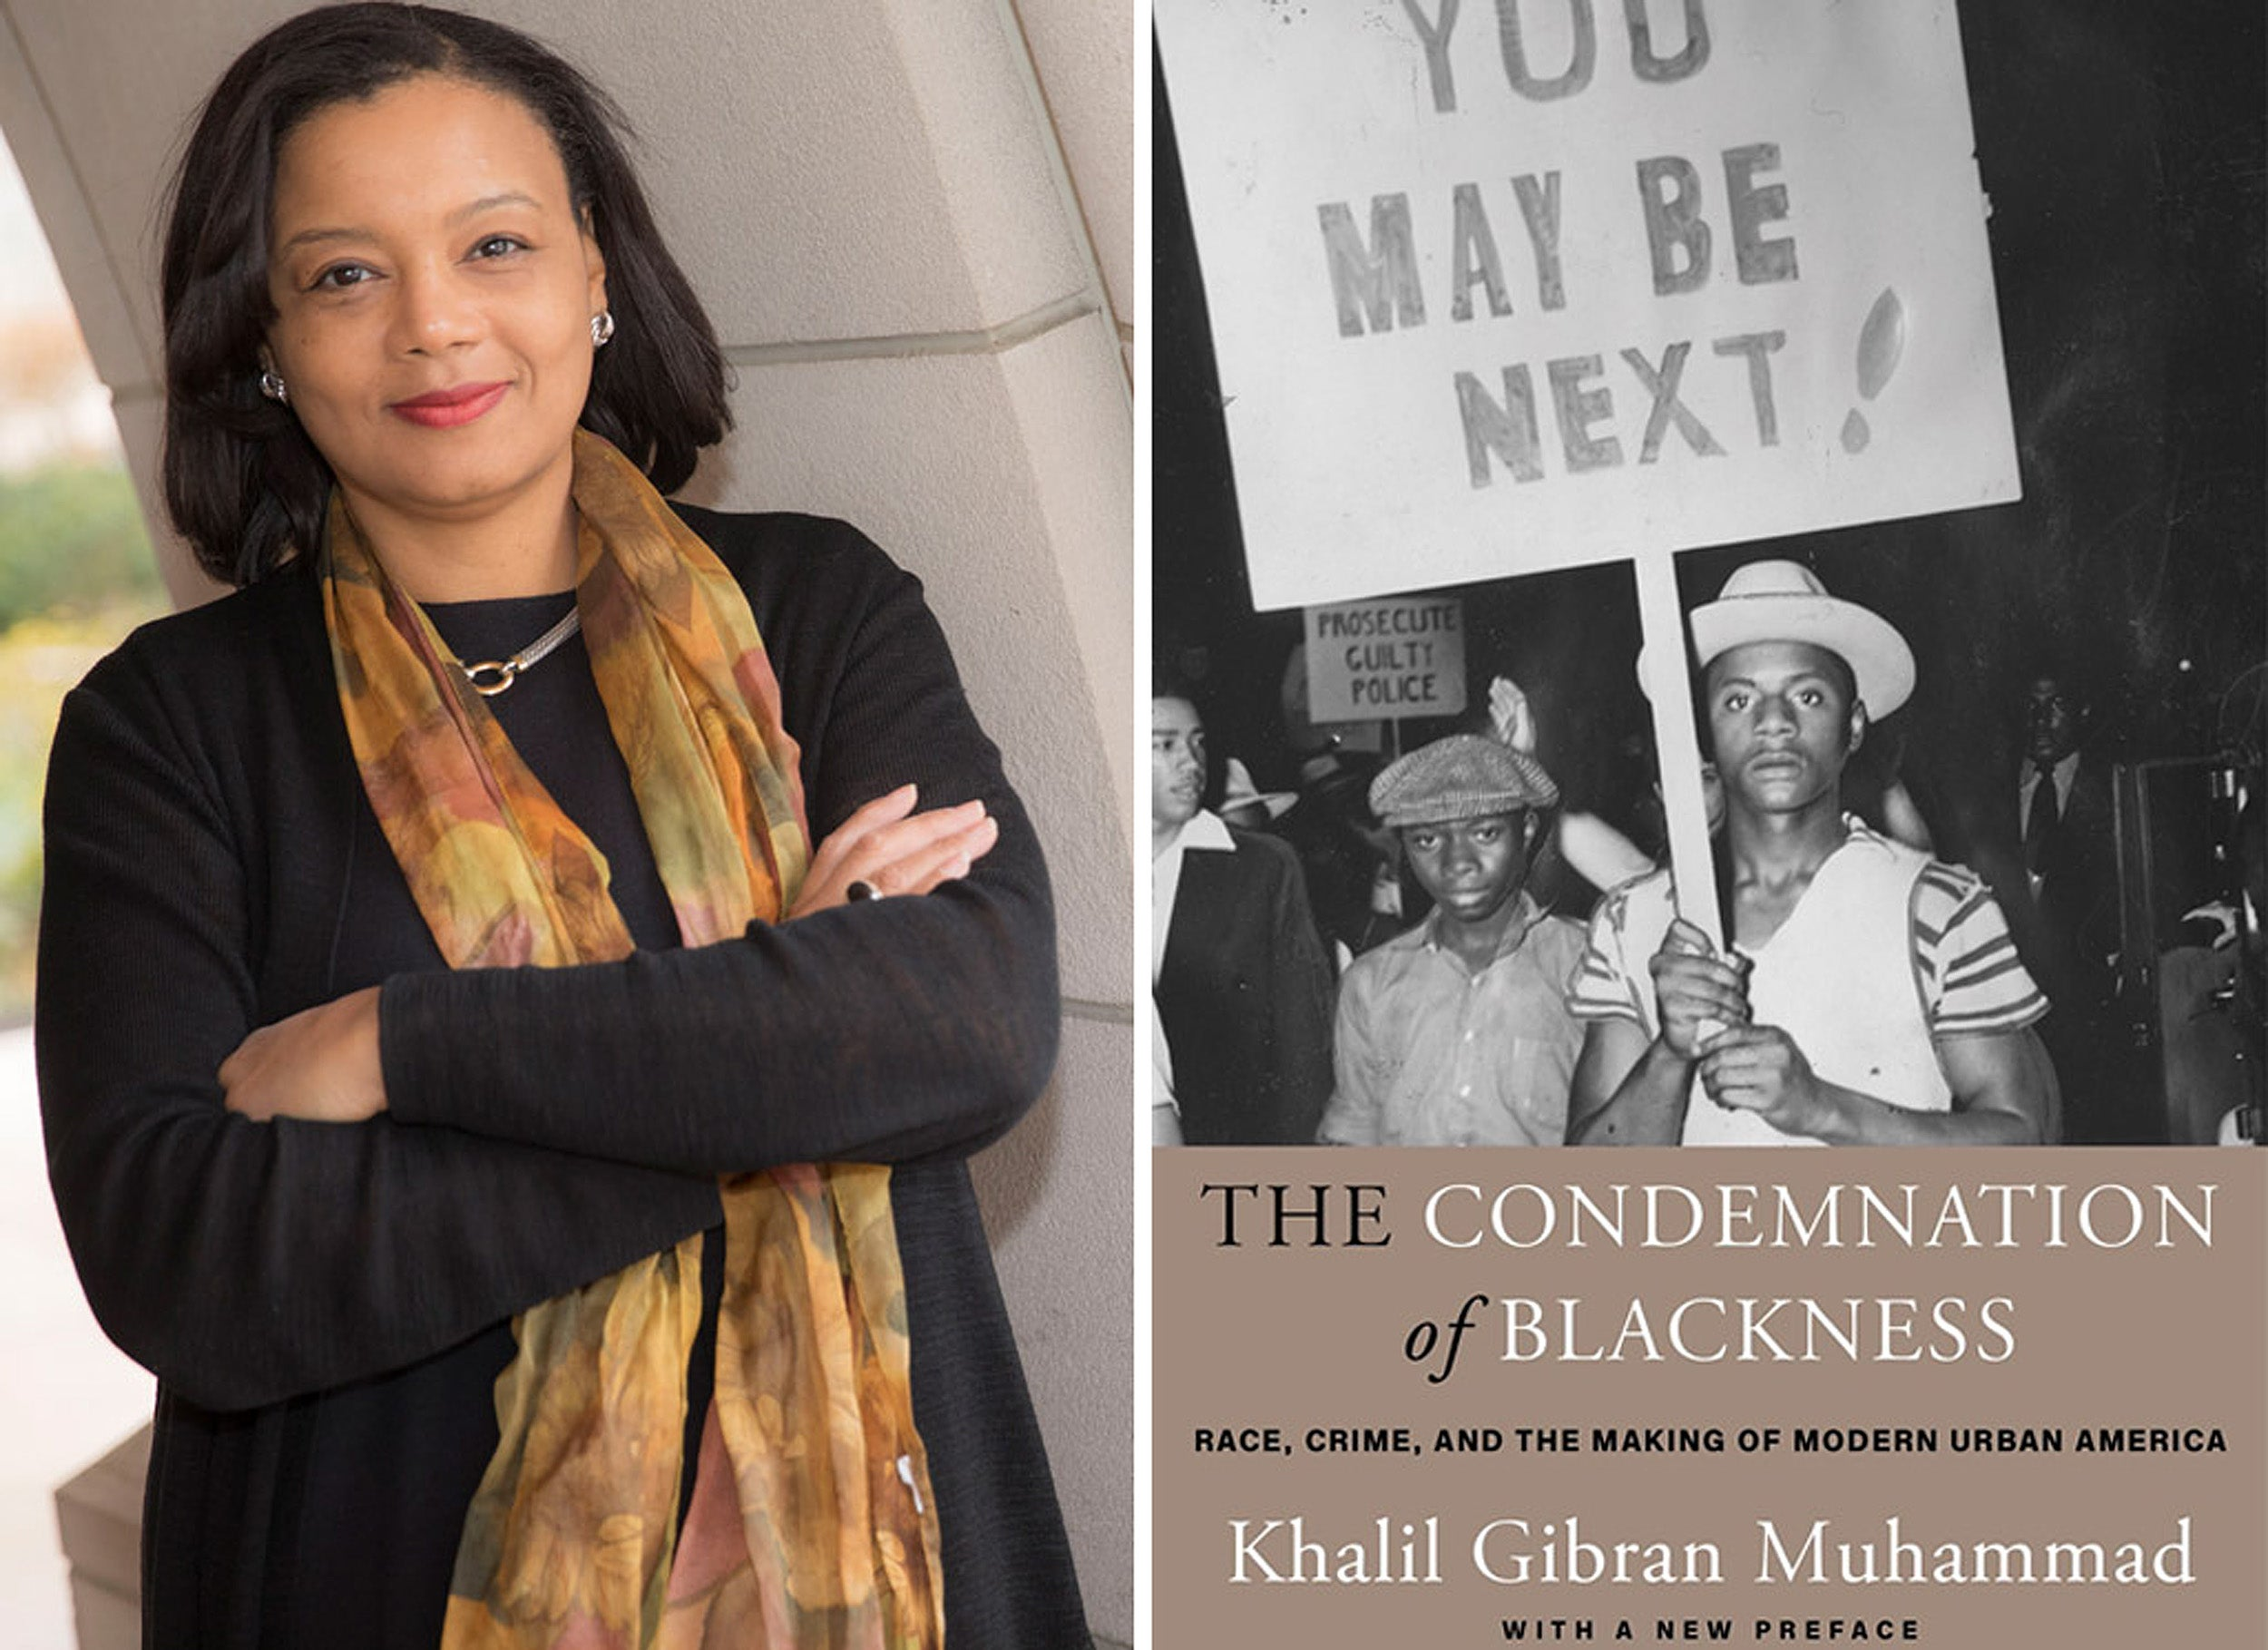 Tomiko Brown-Nagin and the Condemnation of Blackness book cover.